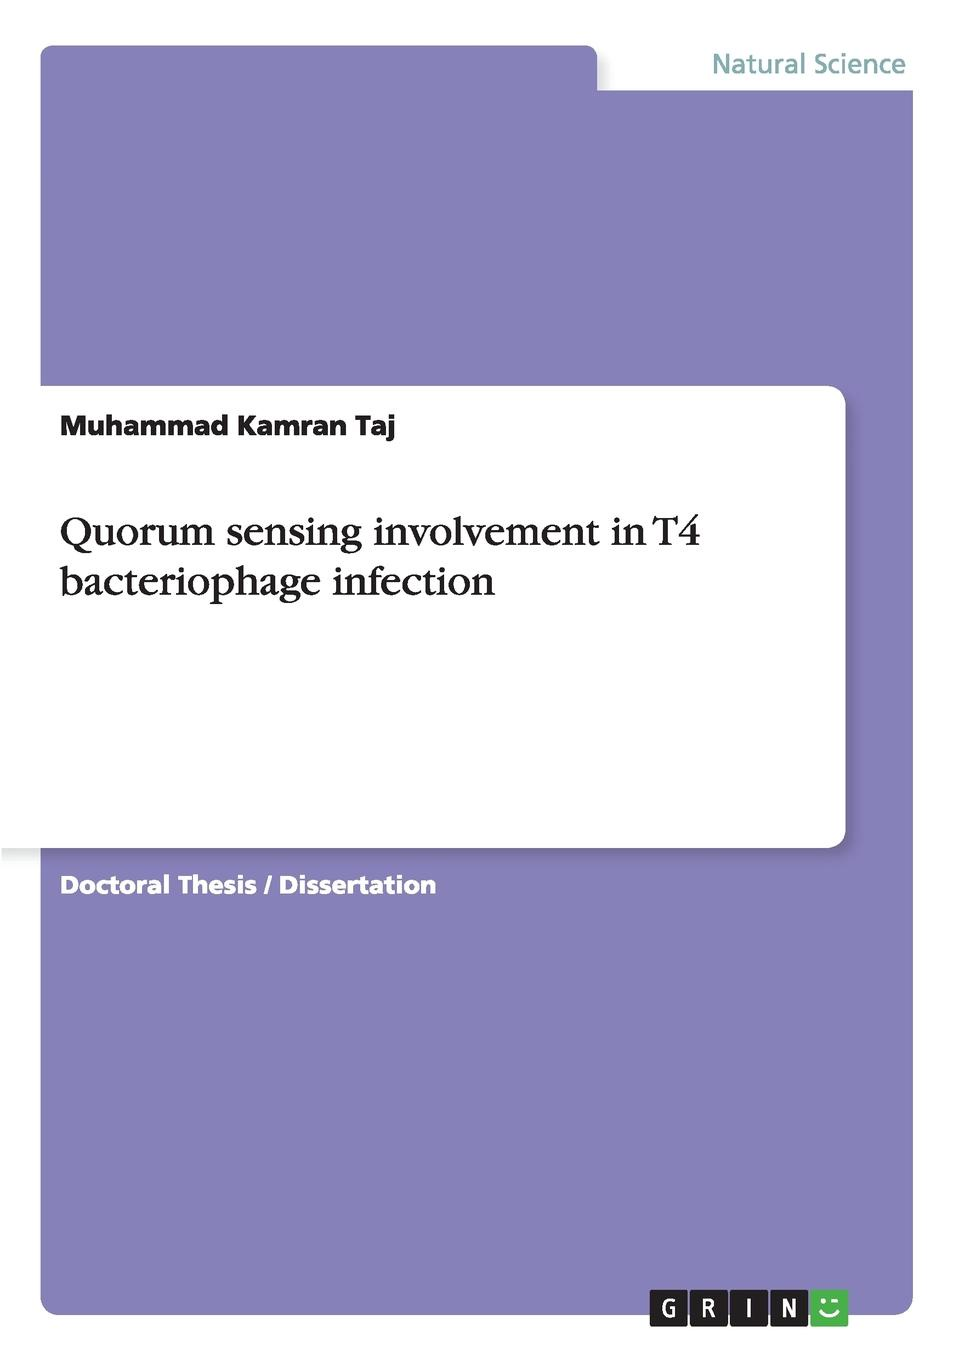 Muhammad Kamran Taj Quorum sensing involvement in T4 bacteriophage infection antibiogram of bacteria from clinical sources